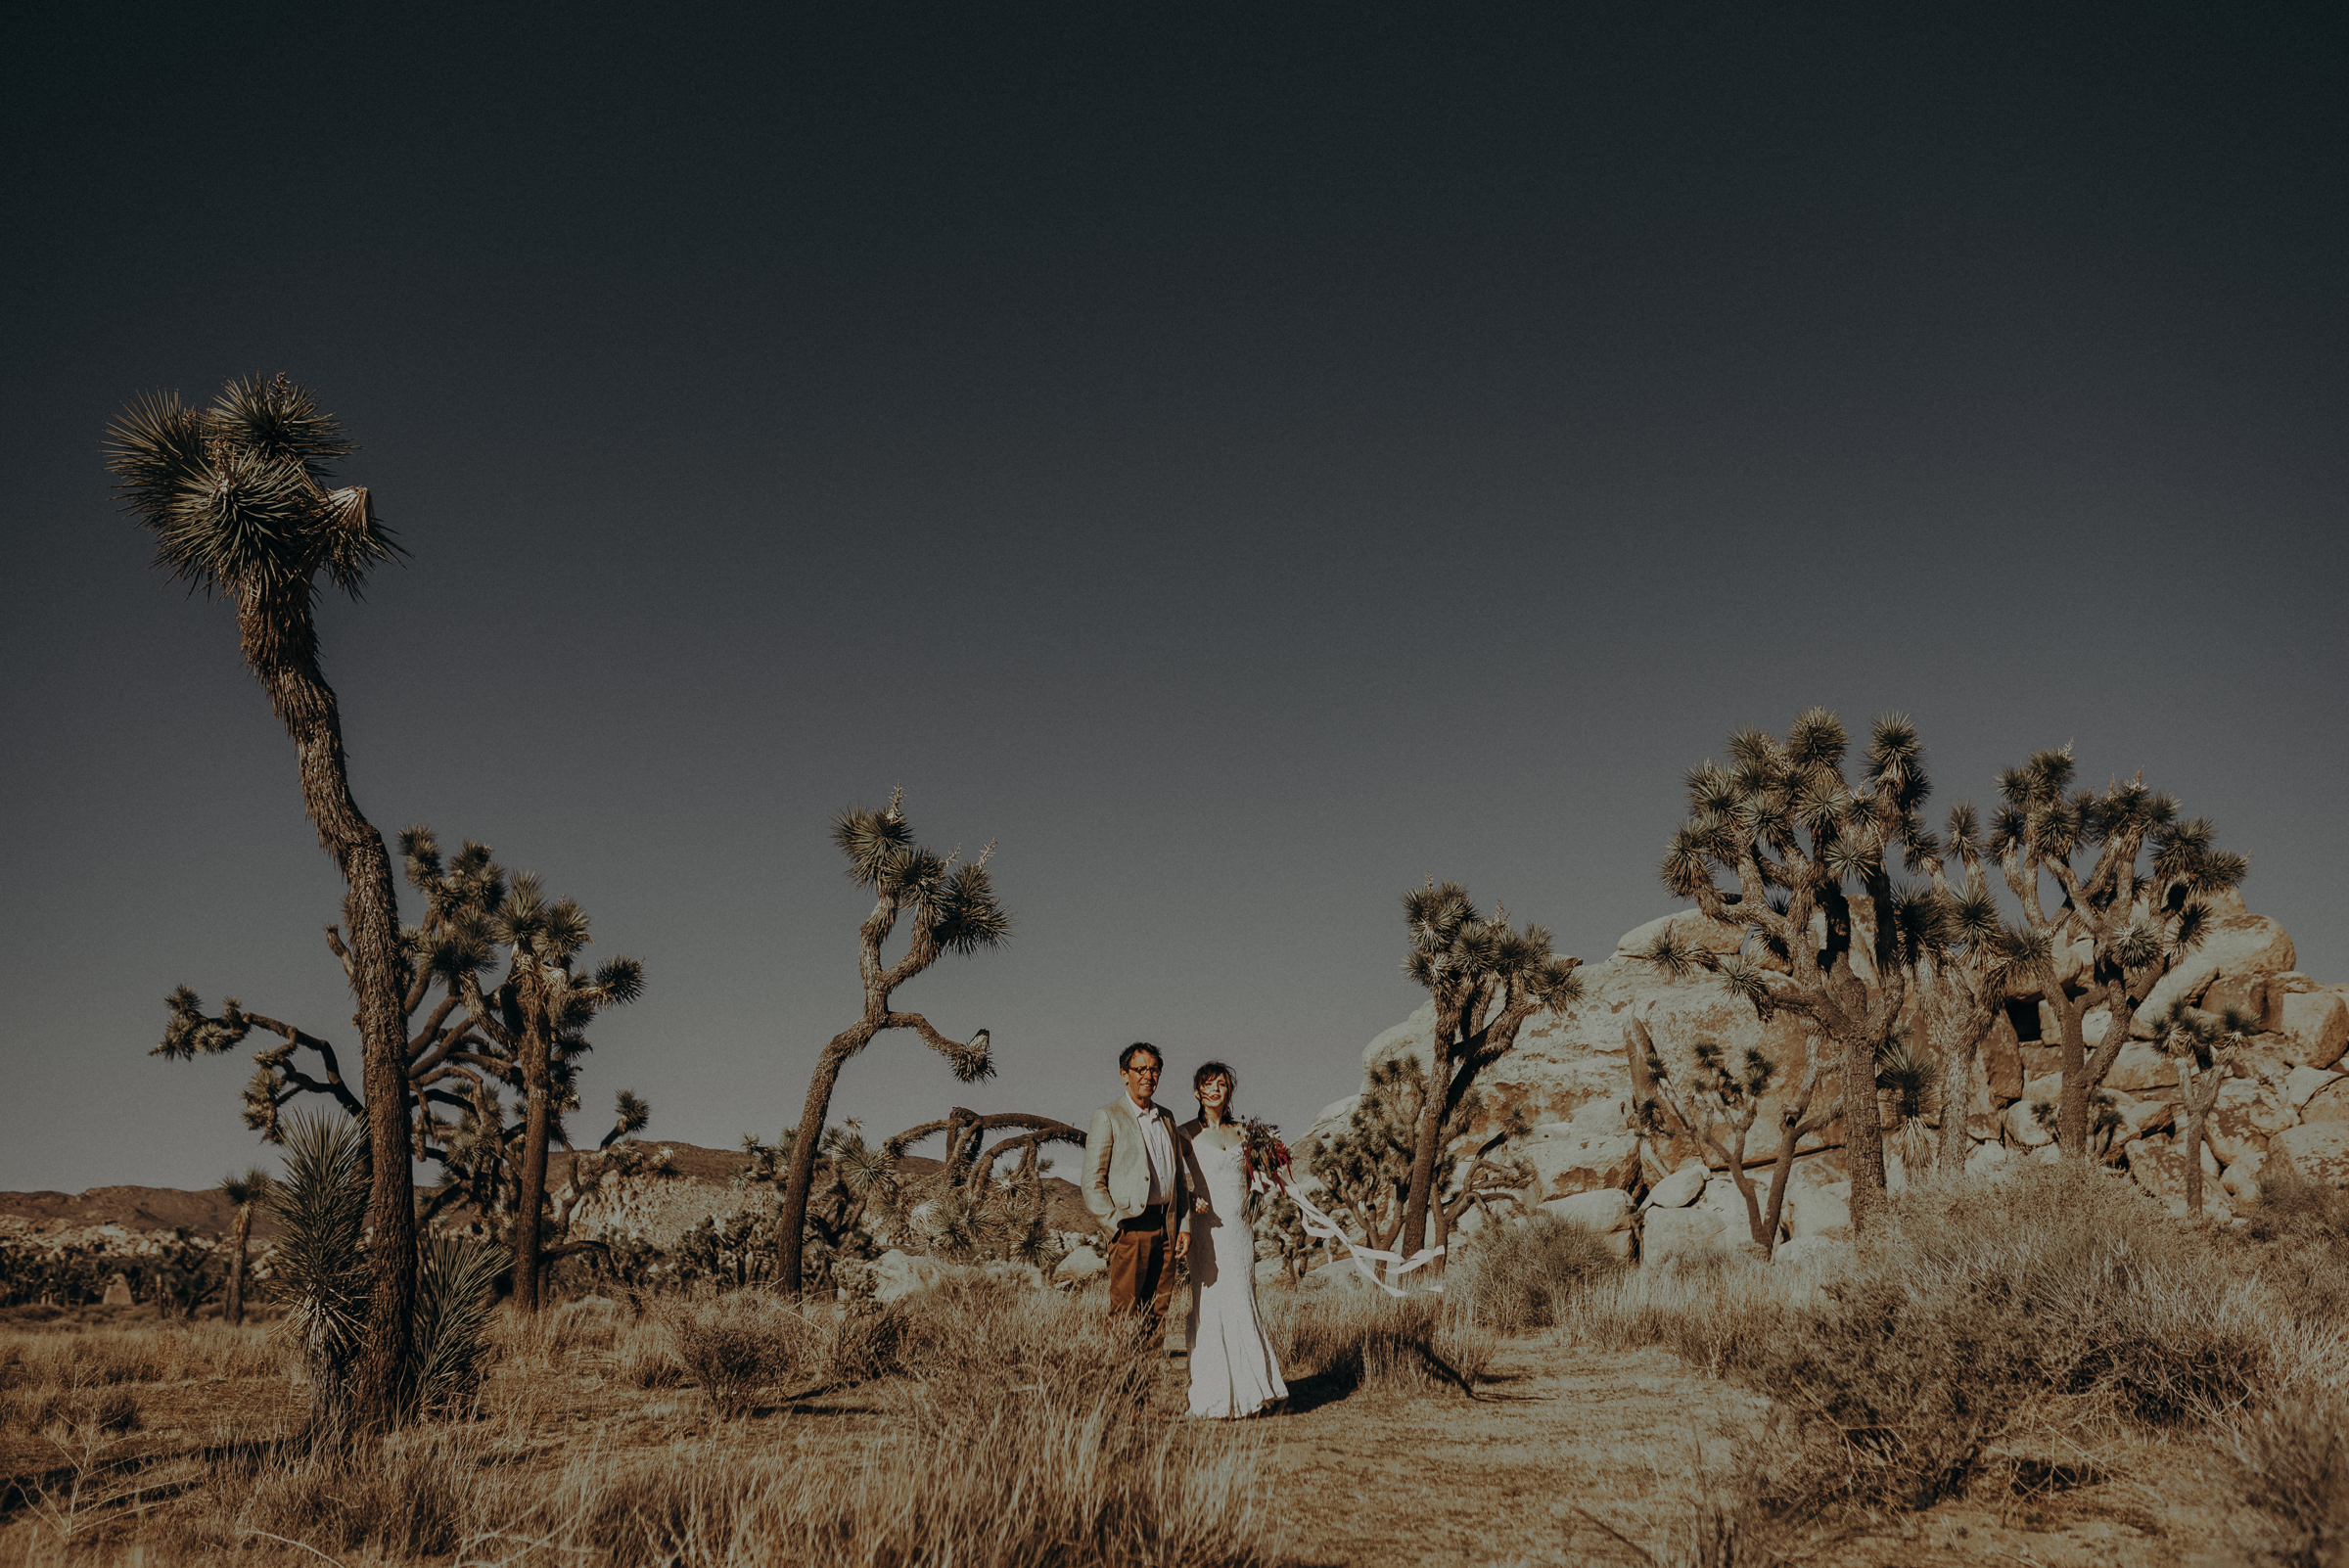 Joshua Tree Elopement - Los Angeles Wedding Photographers - IsaiahAndTaylor.com-016.jpg